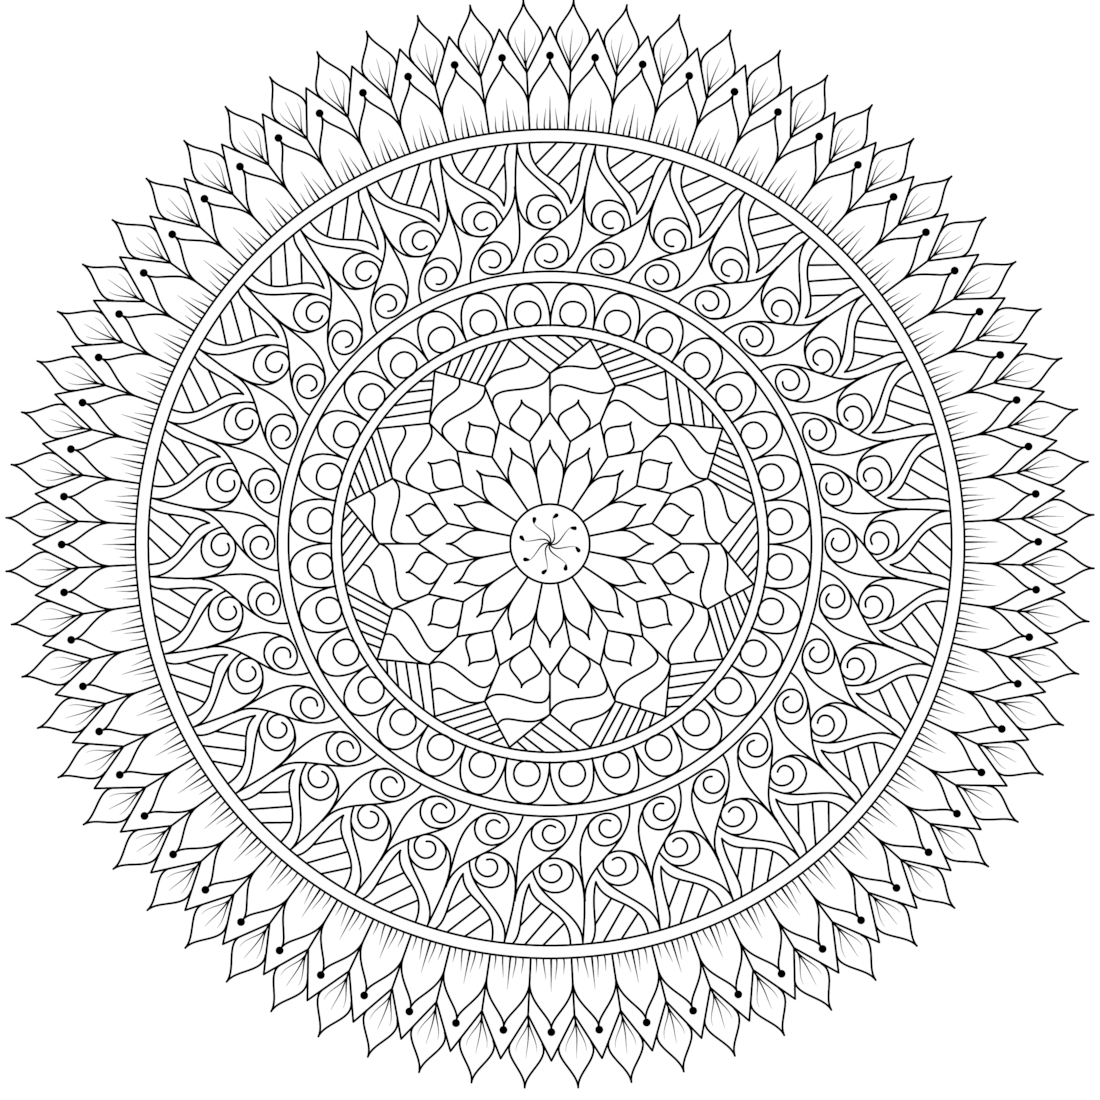 Detailed Mandala Coloring Page For Adults